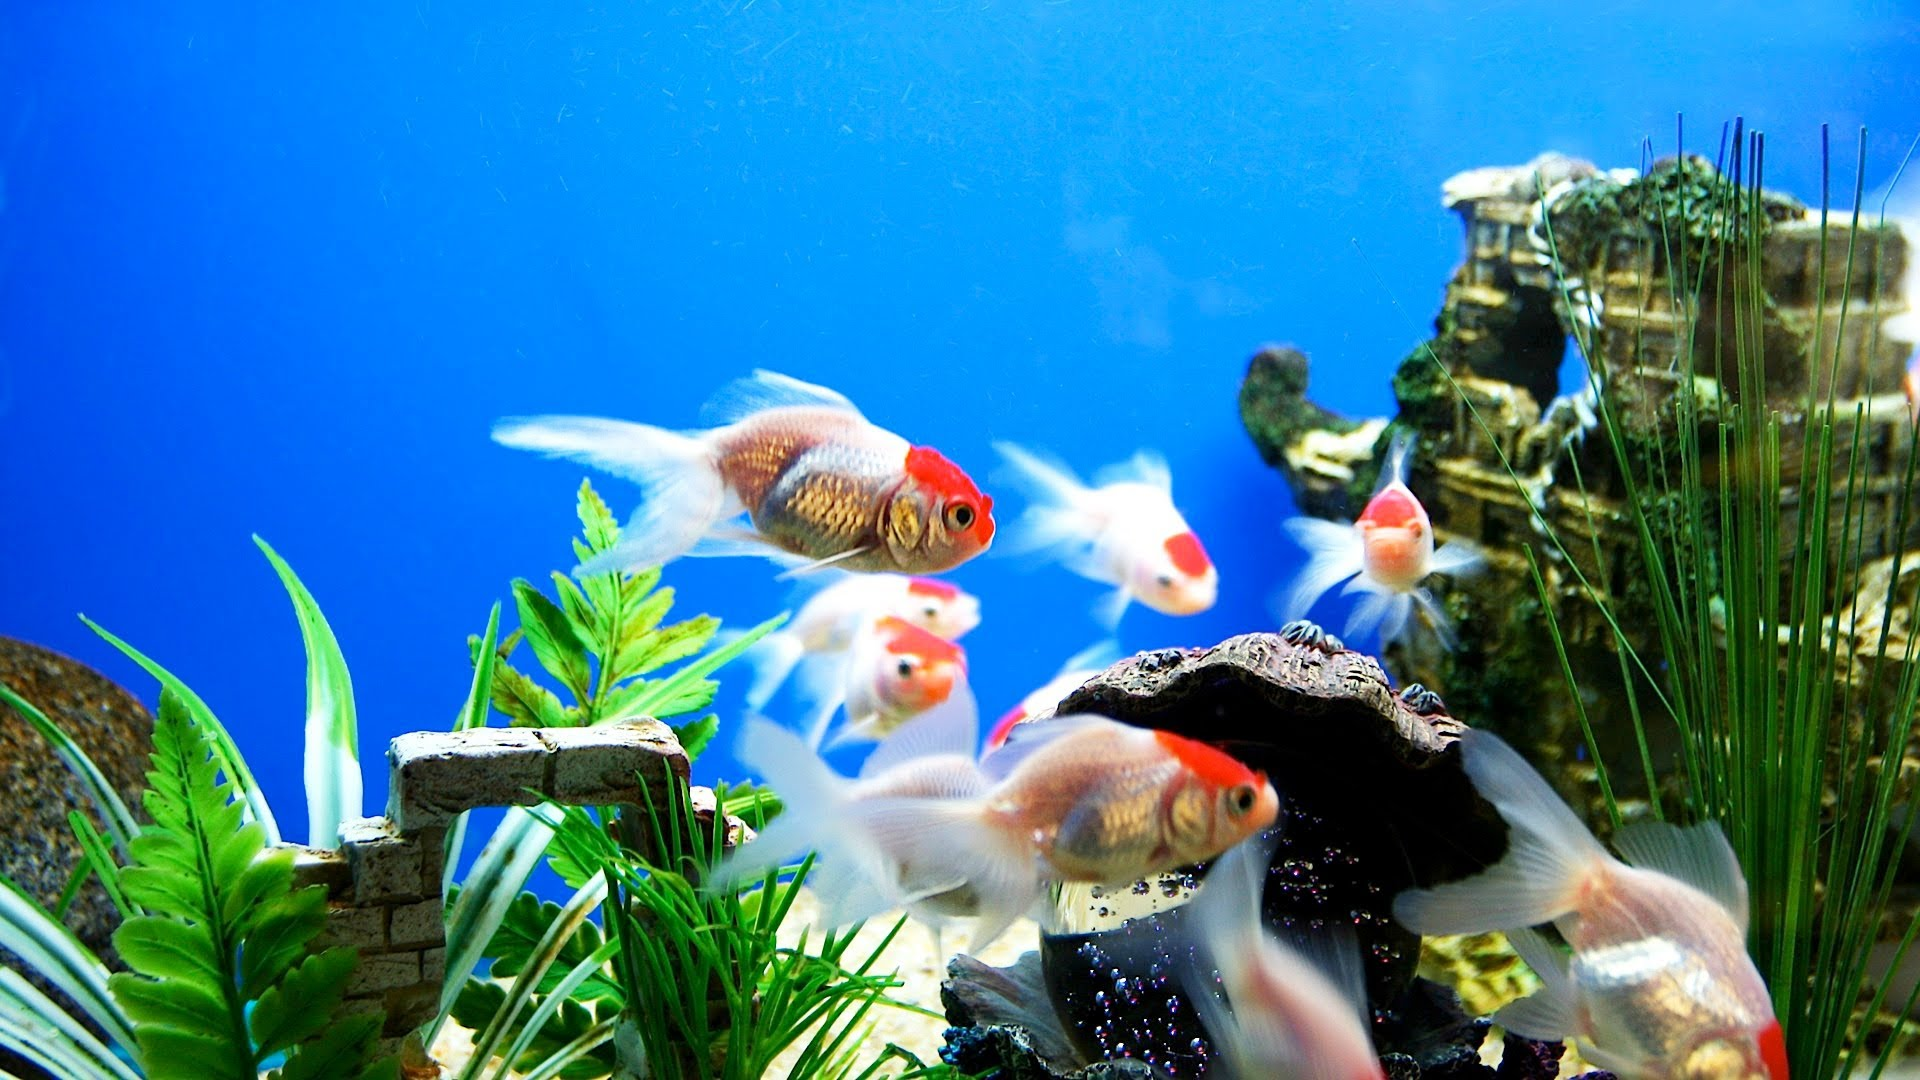 Spring cleaning tips for your fish aquarium wishforpets for How to keep fish tank clean without changing water